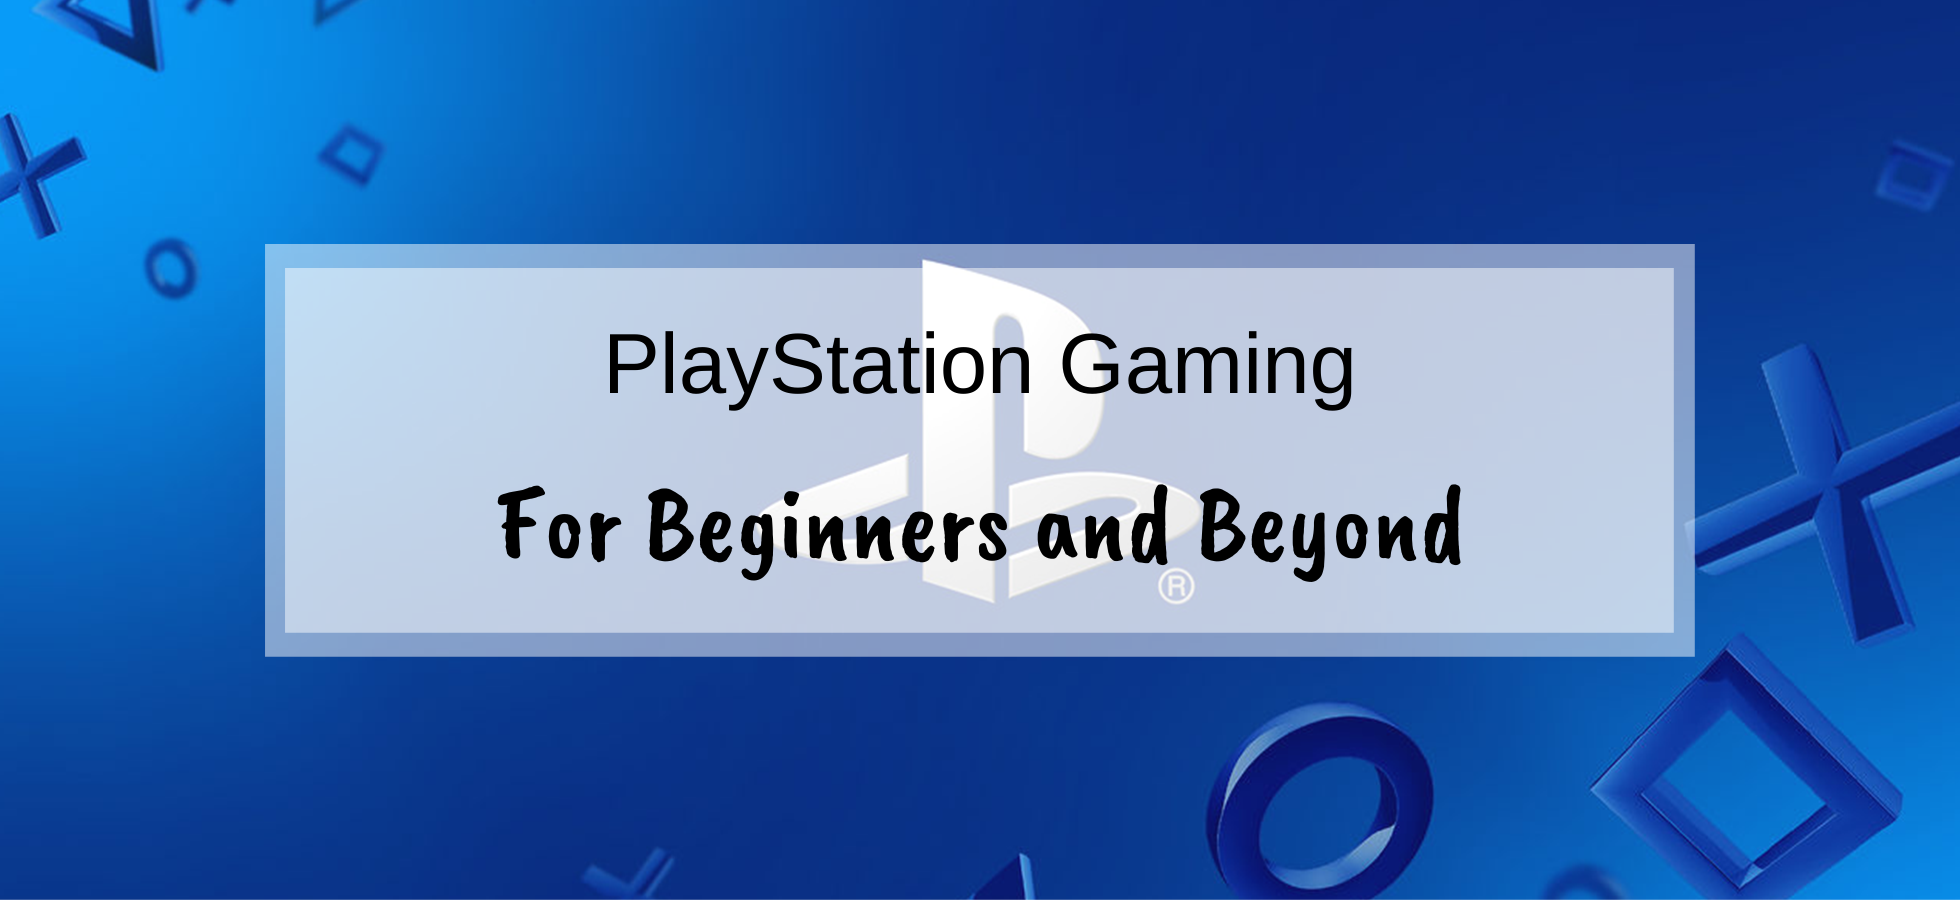 PlayStation gaming for beginners and beyond - Gaming Goals